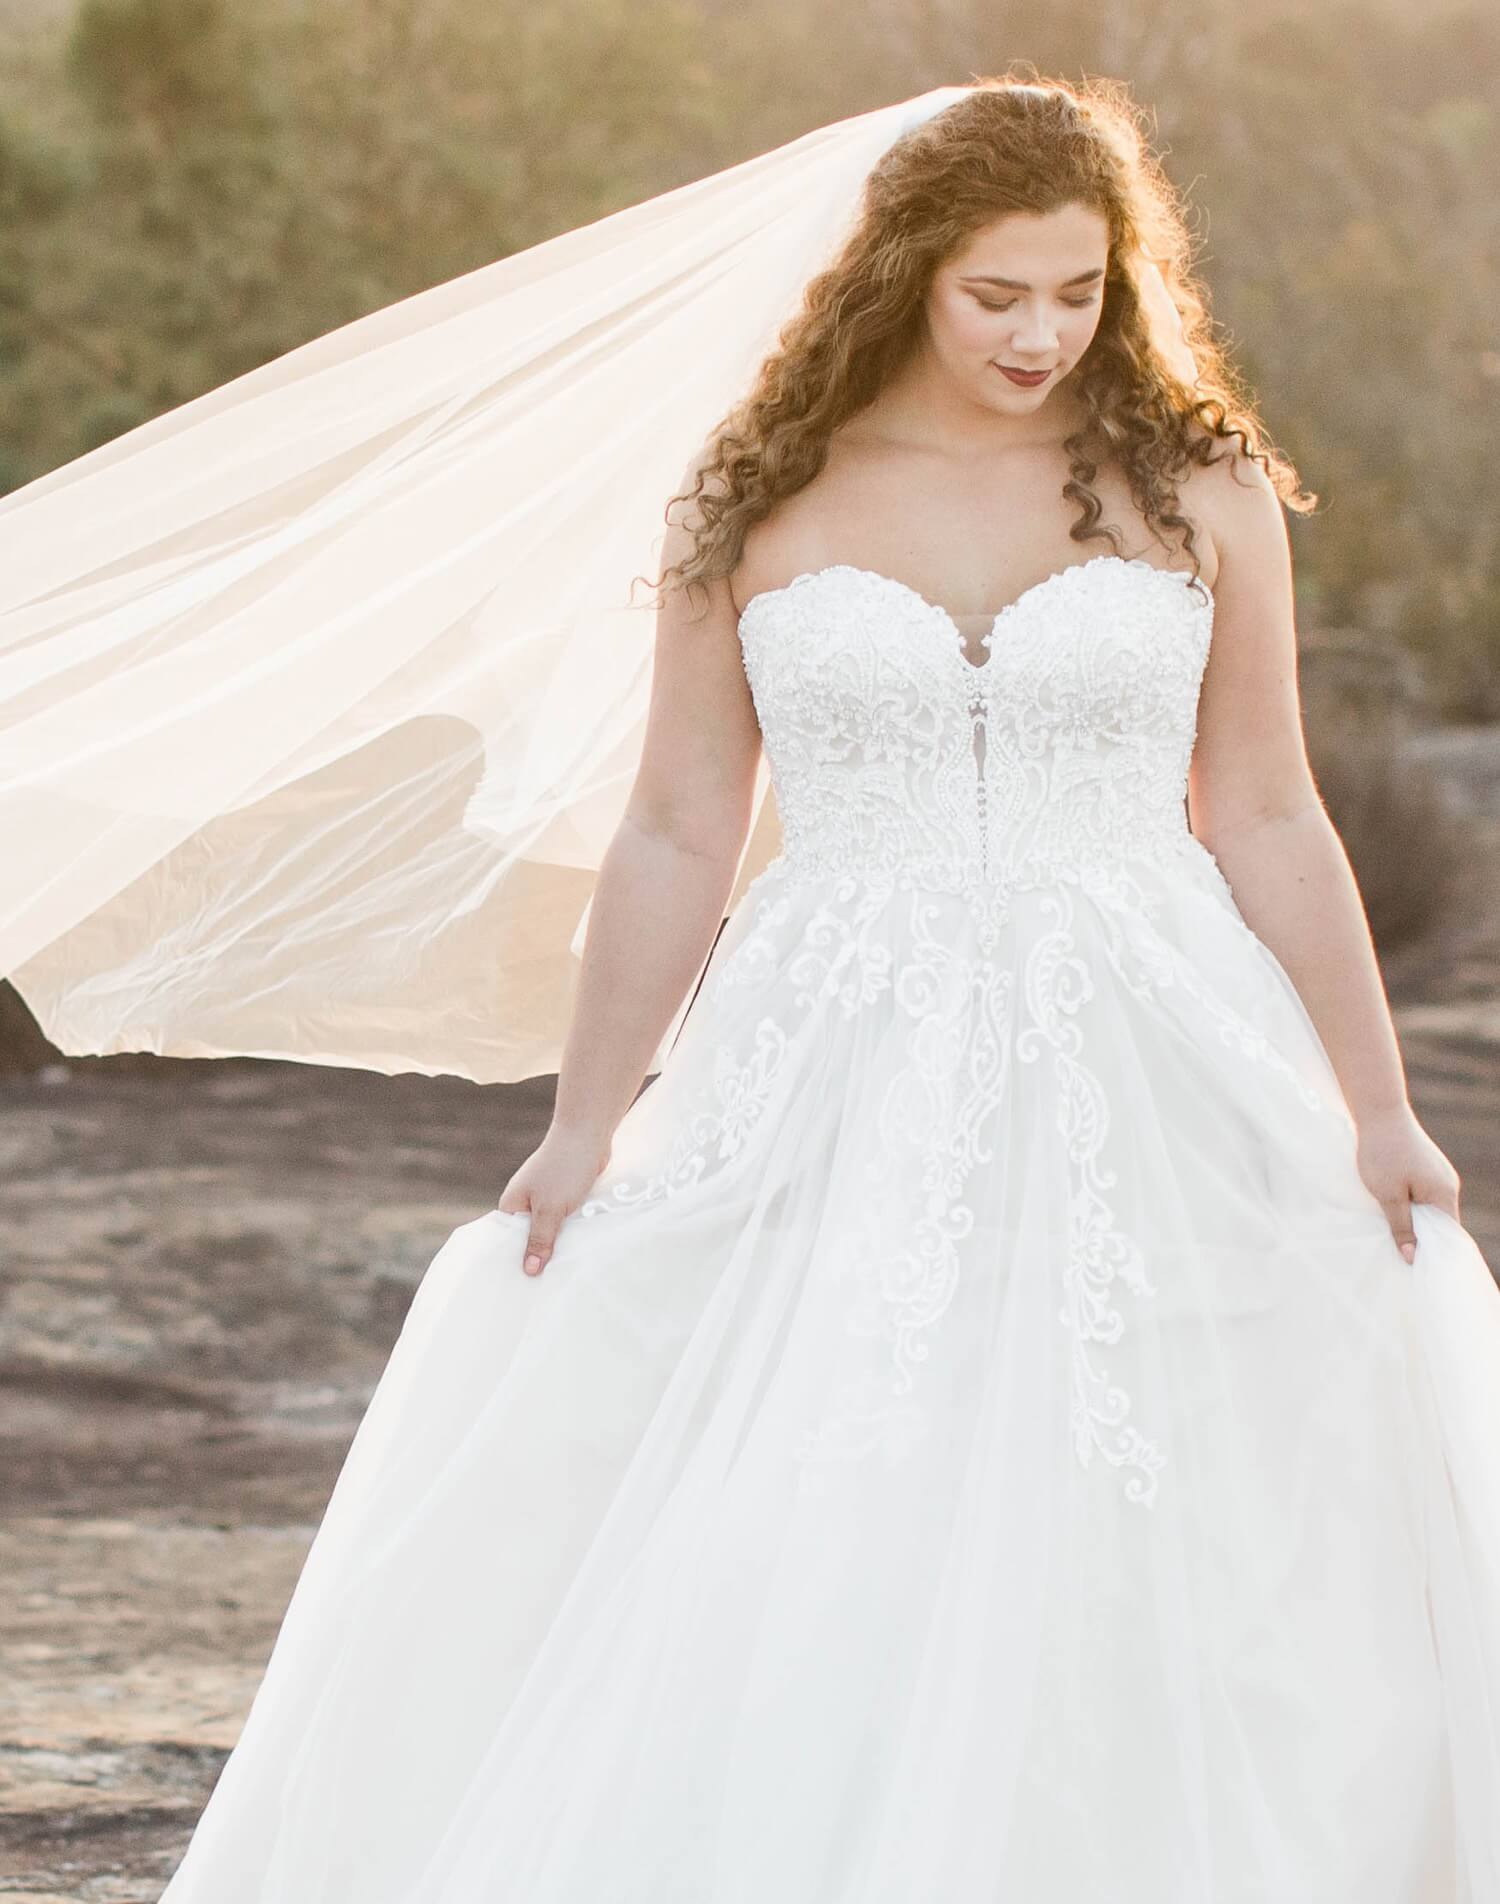 Plus size bride in white gown